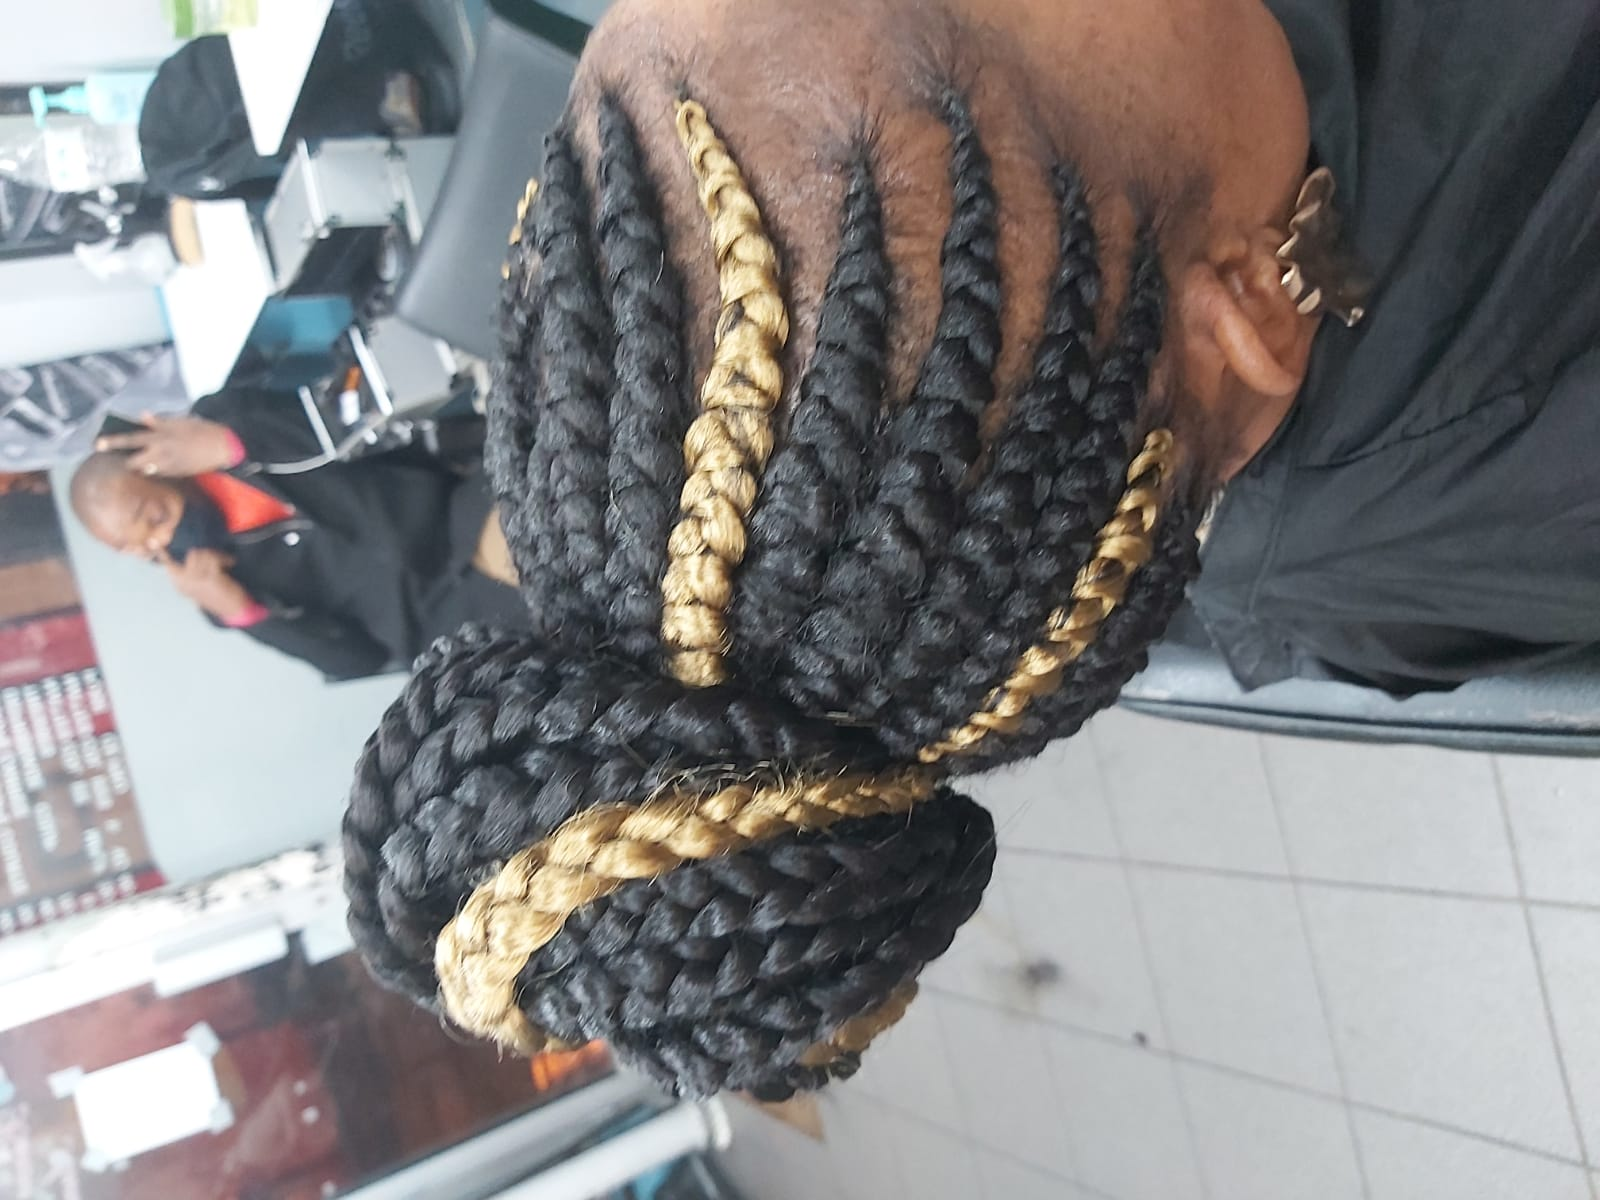 salon de coiffure afro tresse tresses box braids crochet braids vanilles tissages paris 75 77 78 91 92 93 94 95 CHFKQVYE